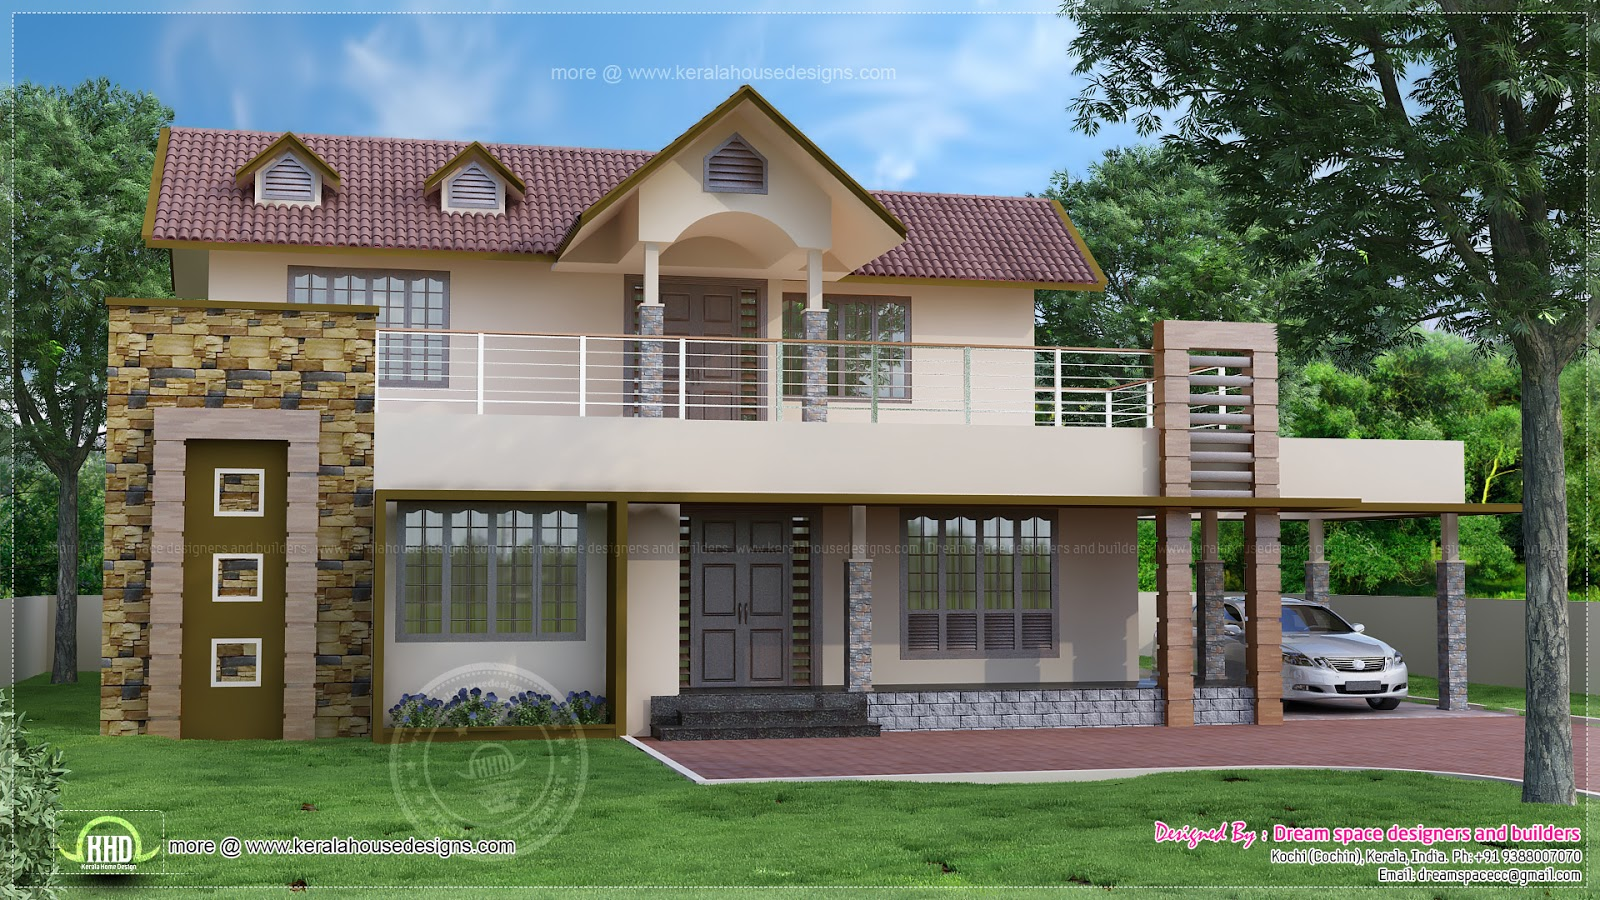 4 bedroom two storey villa exterior house design plans for 4 bedroom villa plans